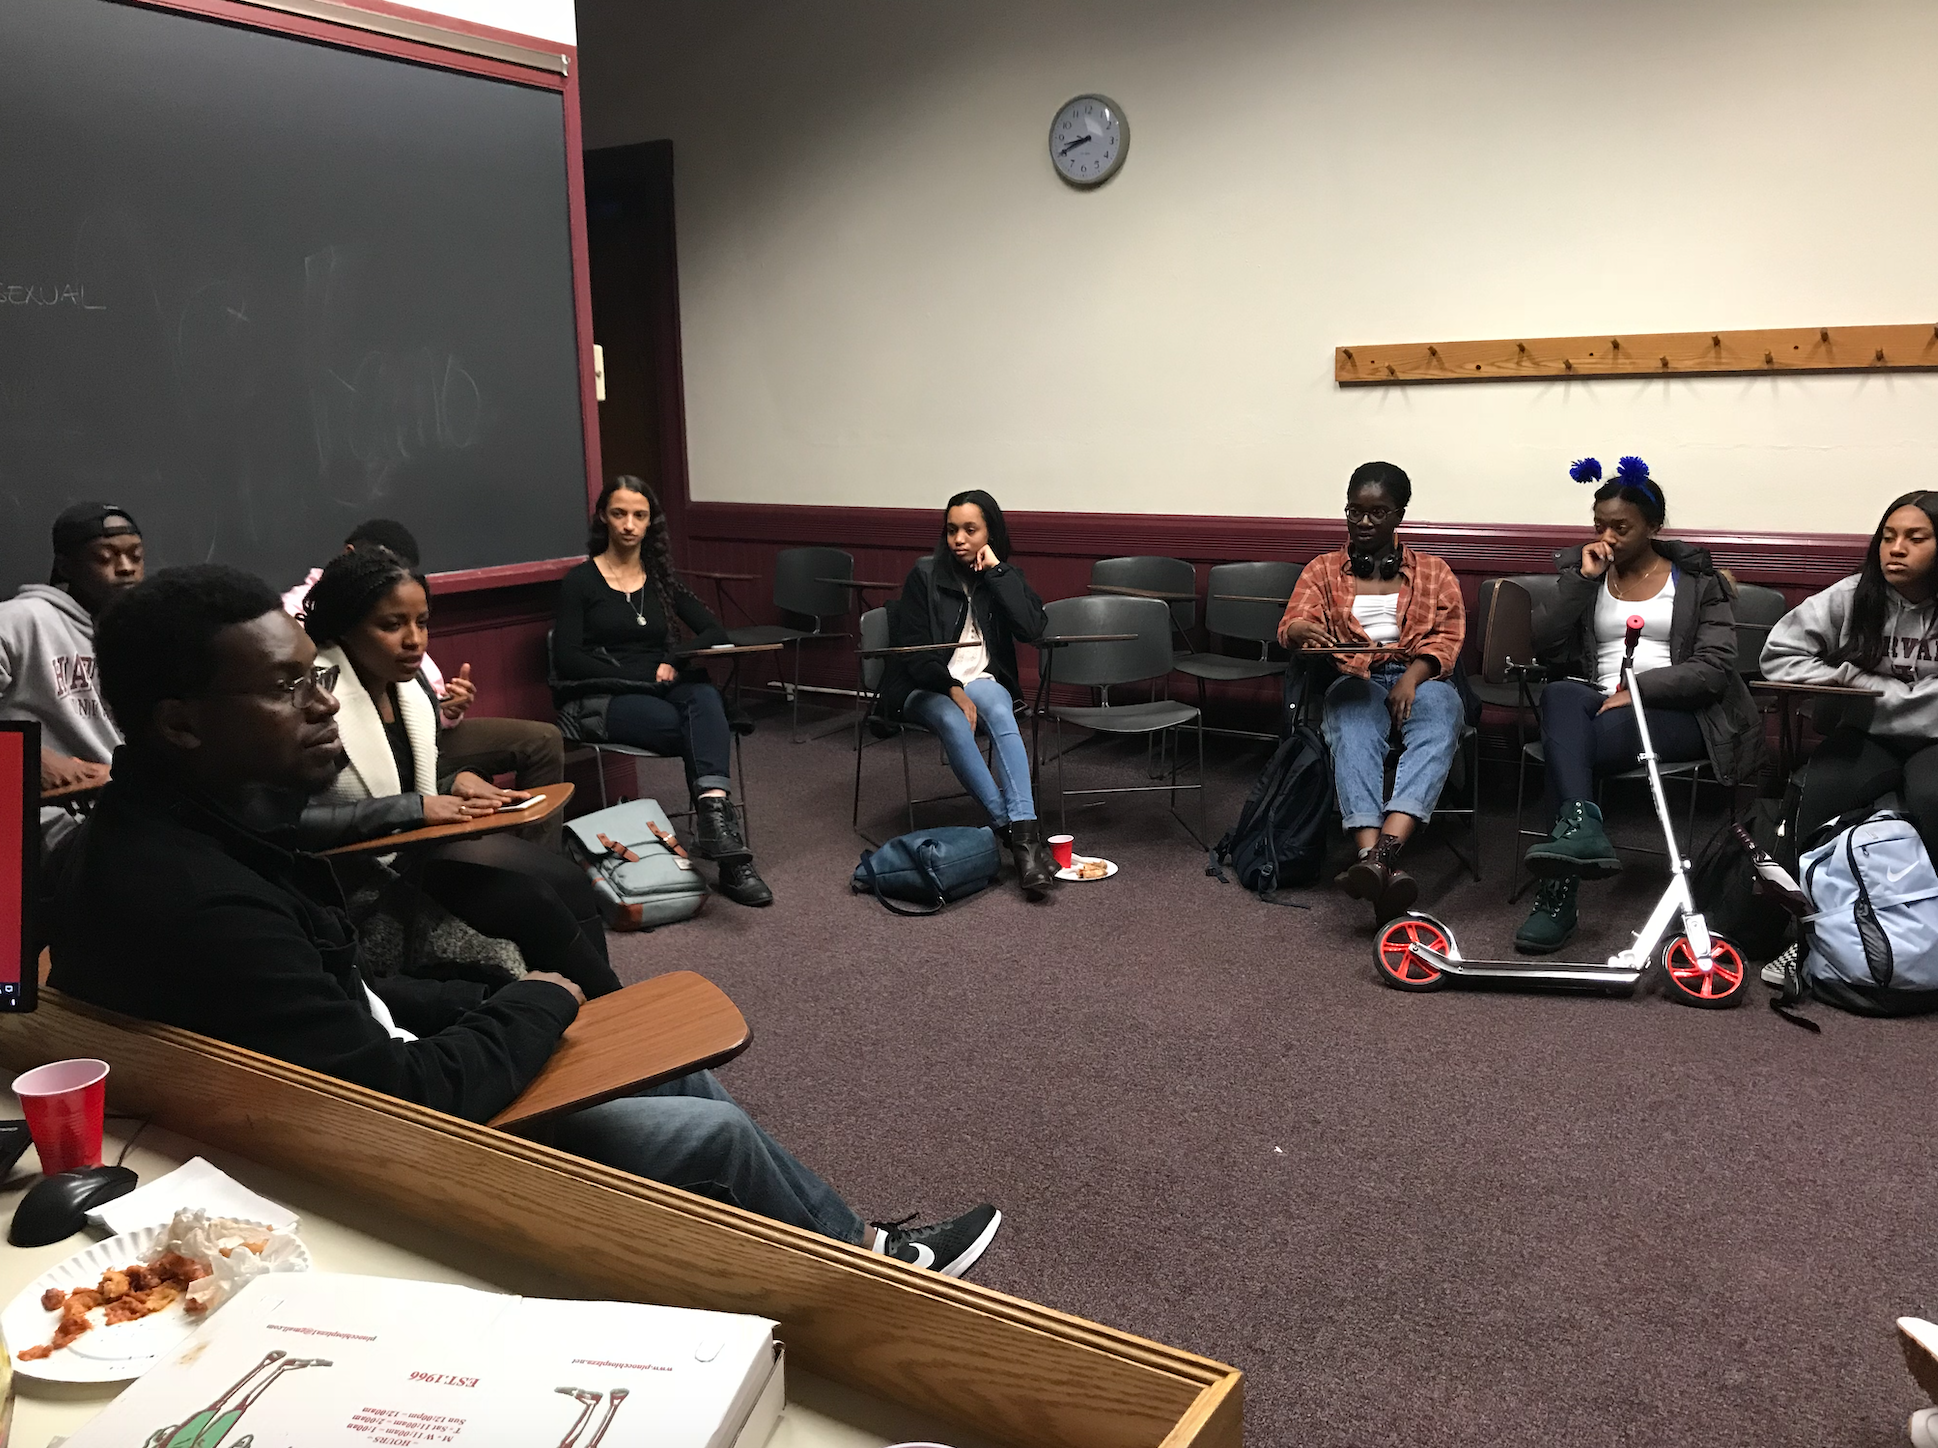 Students and members from Harvard's Black Law Students Association (BLSA) discuss affirmative action